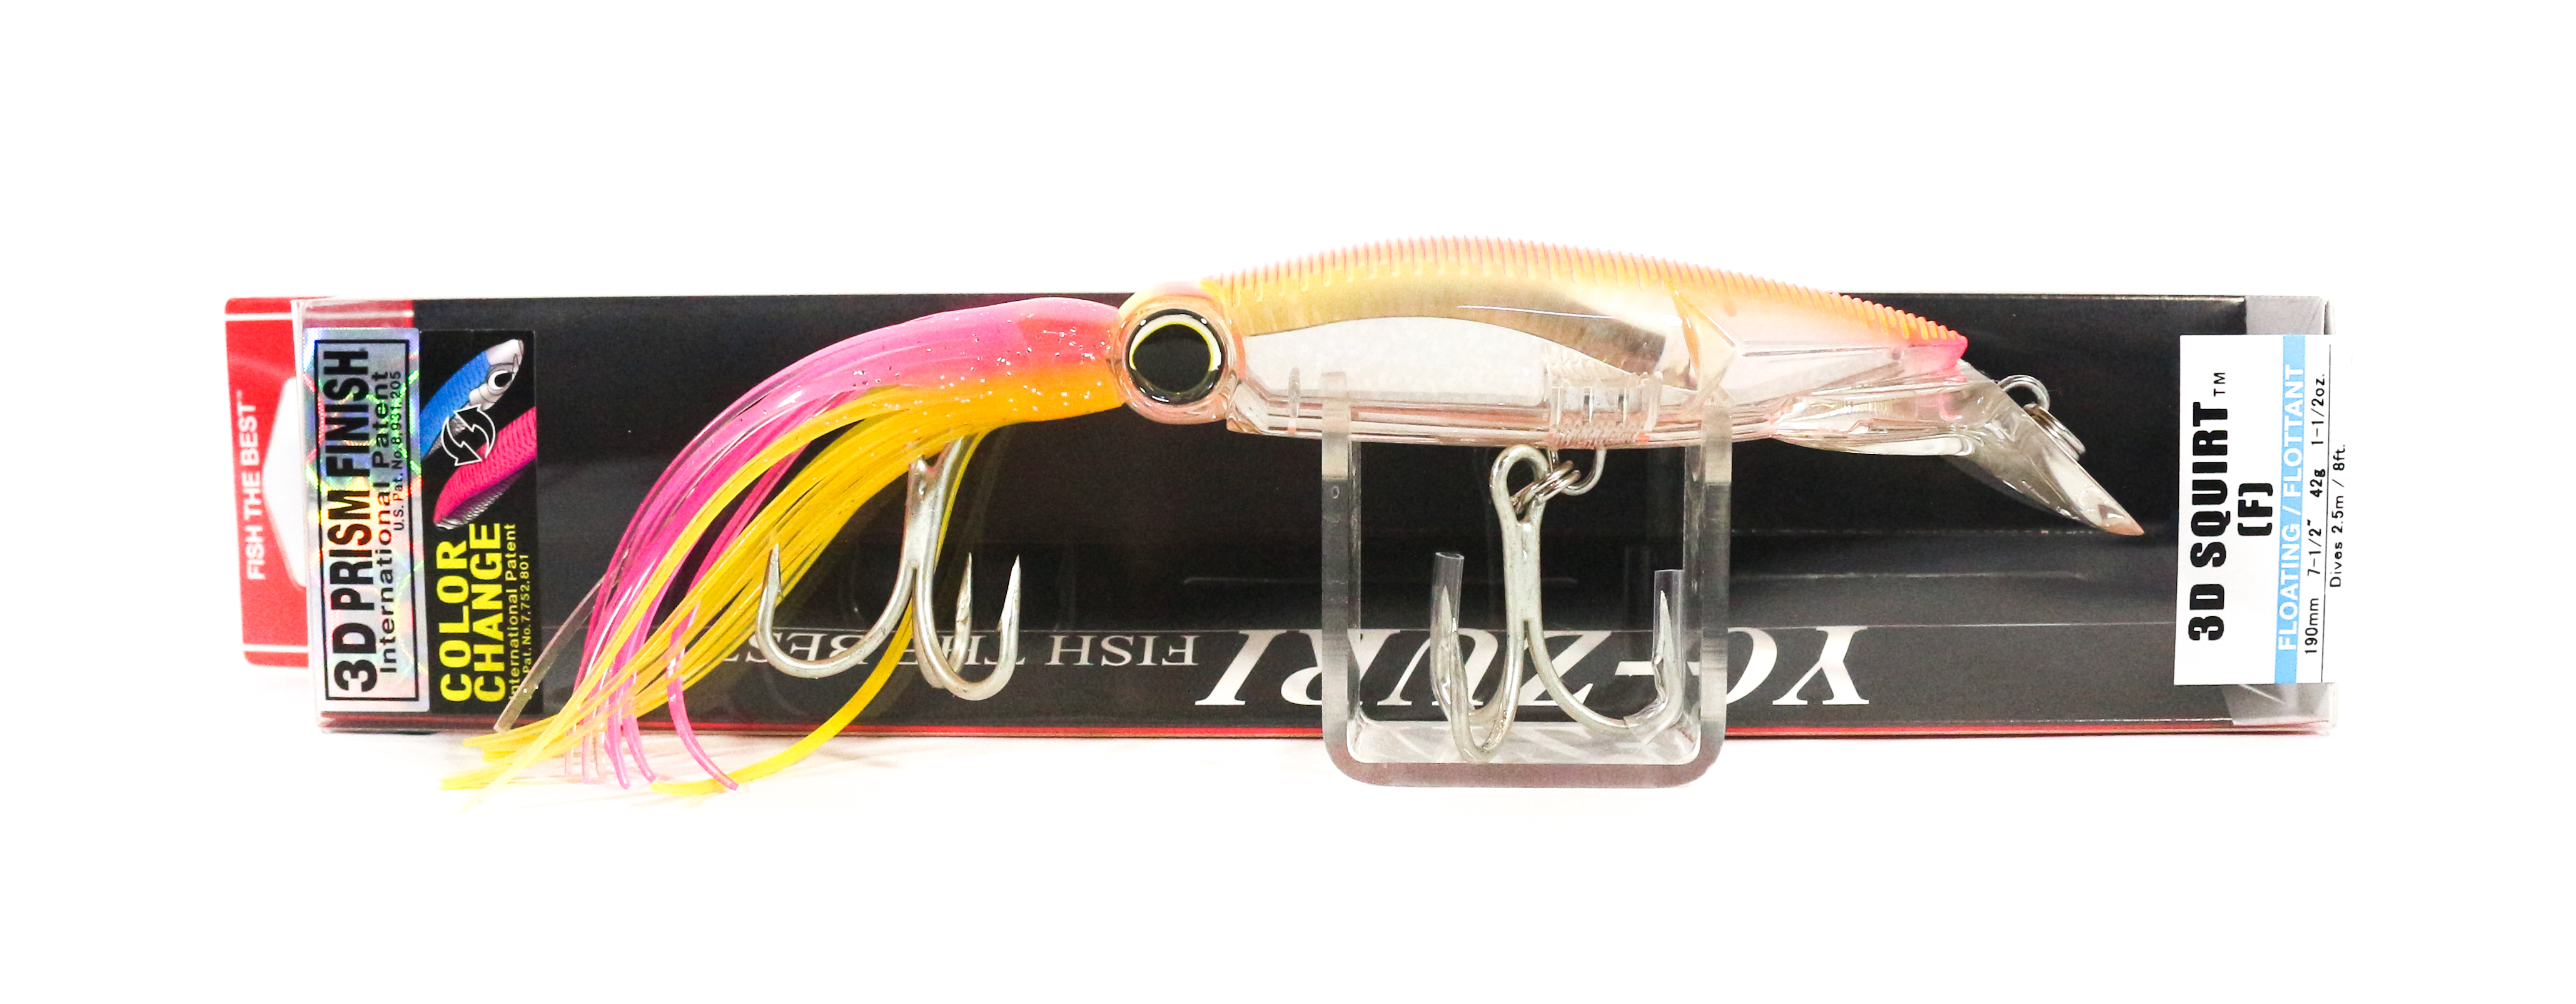 Yo Zuri 3D Squirt 190 mm Trolling Floating Lure R1166-CPHP (5371)